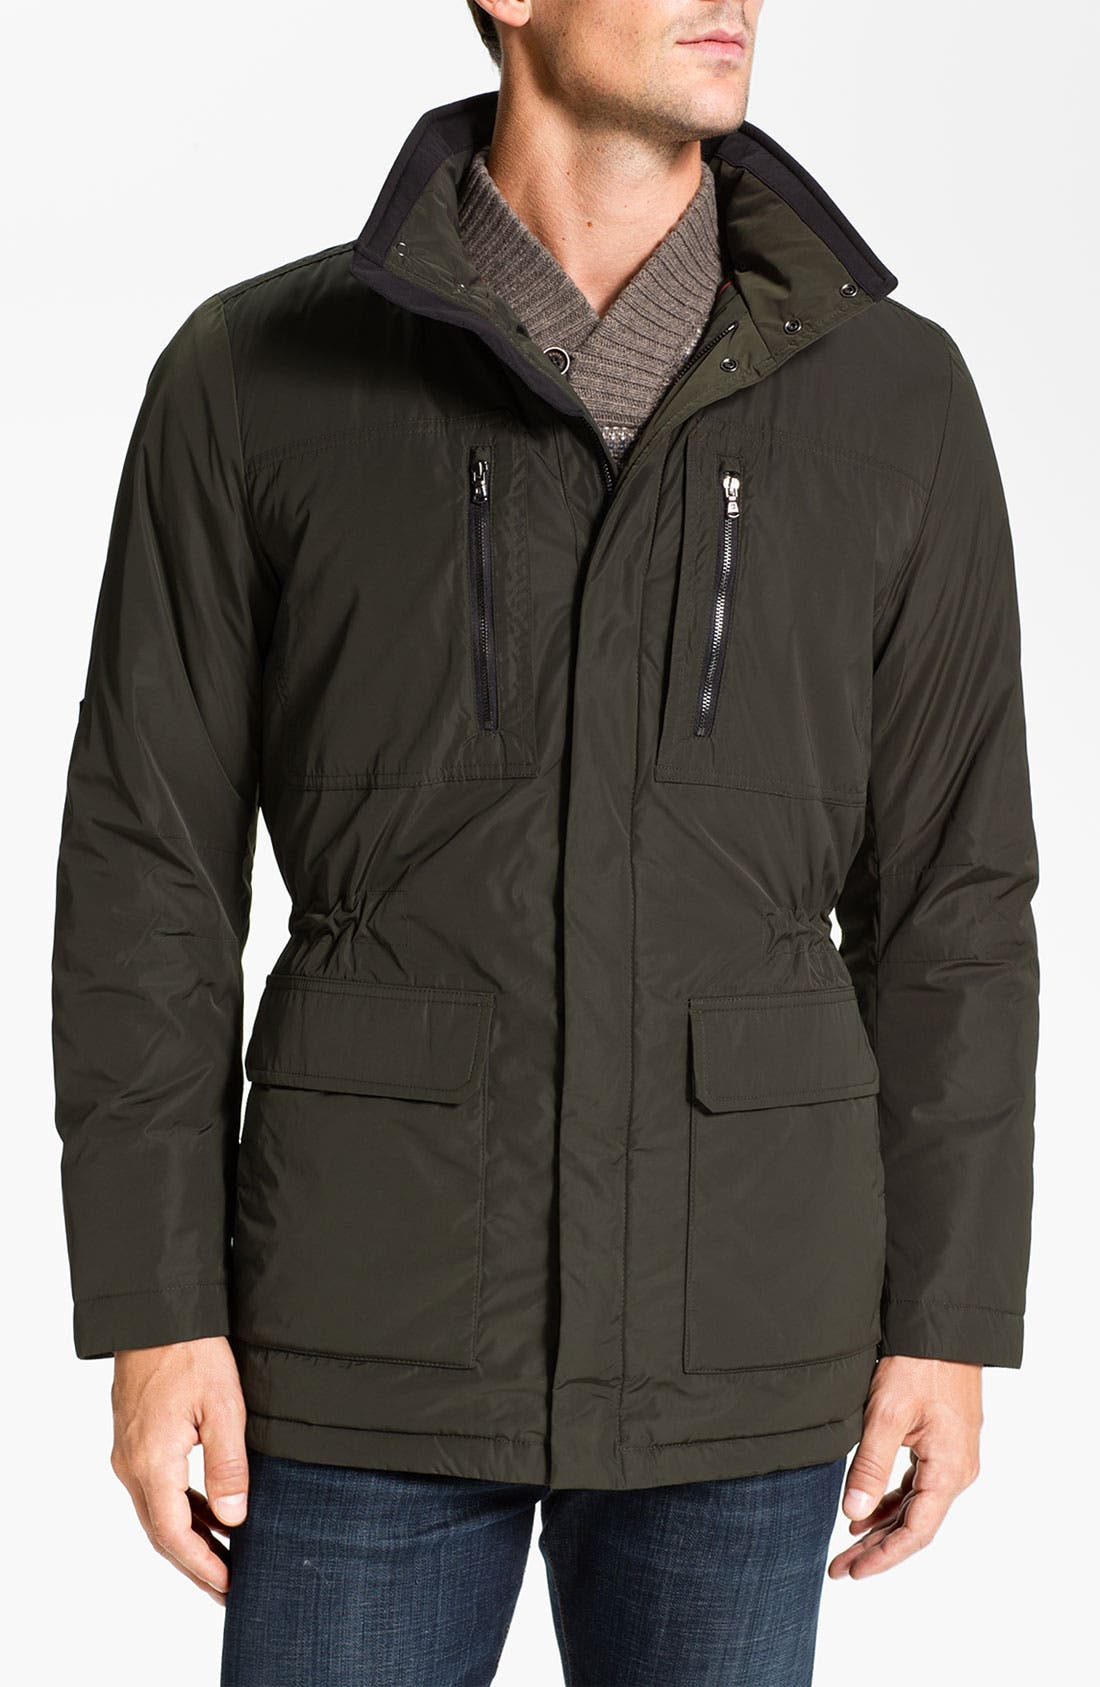 Alternate Image 1 Selected - Victorinox Swiss Army® 'Explorer' Insulated Jacket (Online Exclusive)